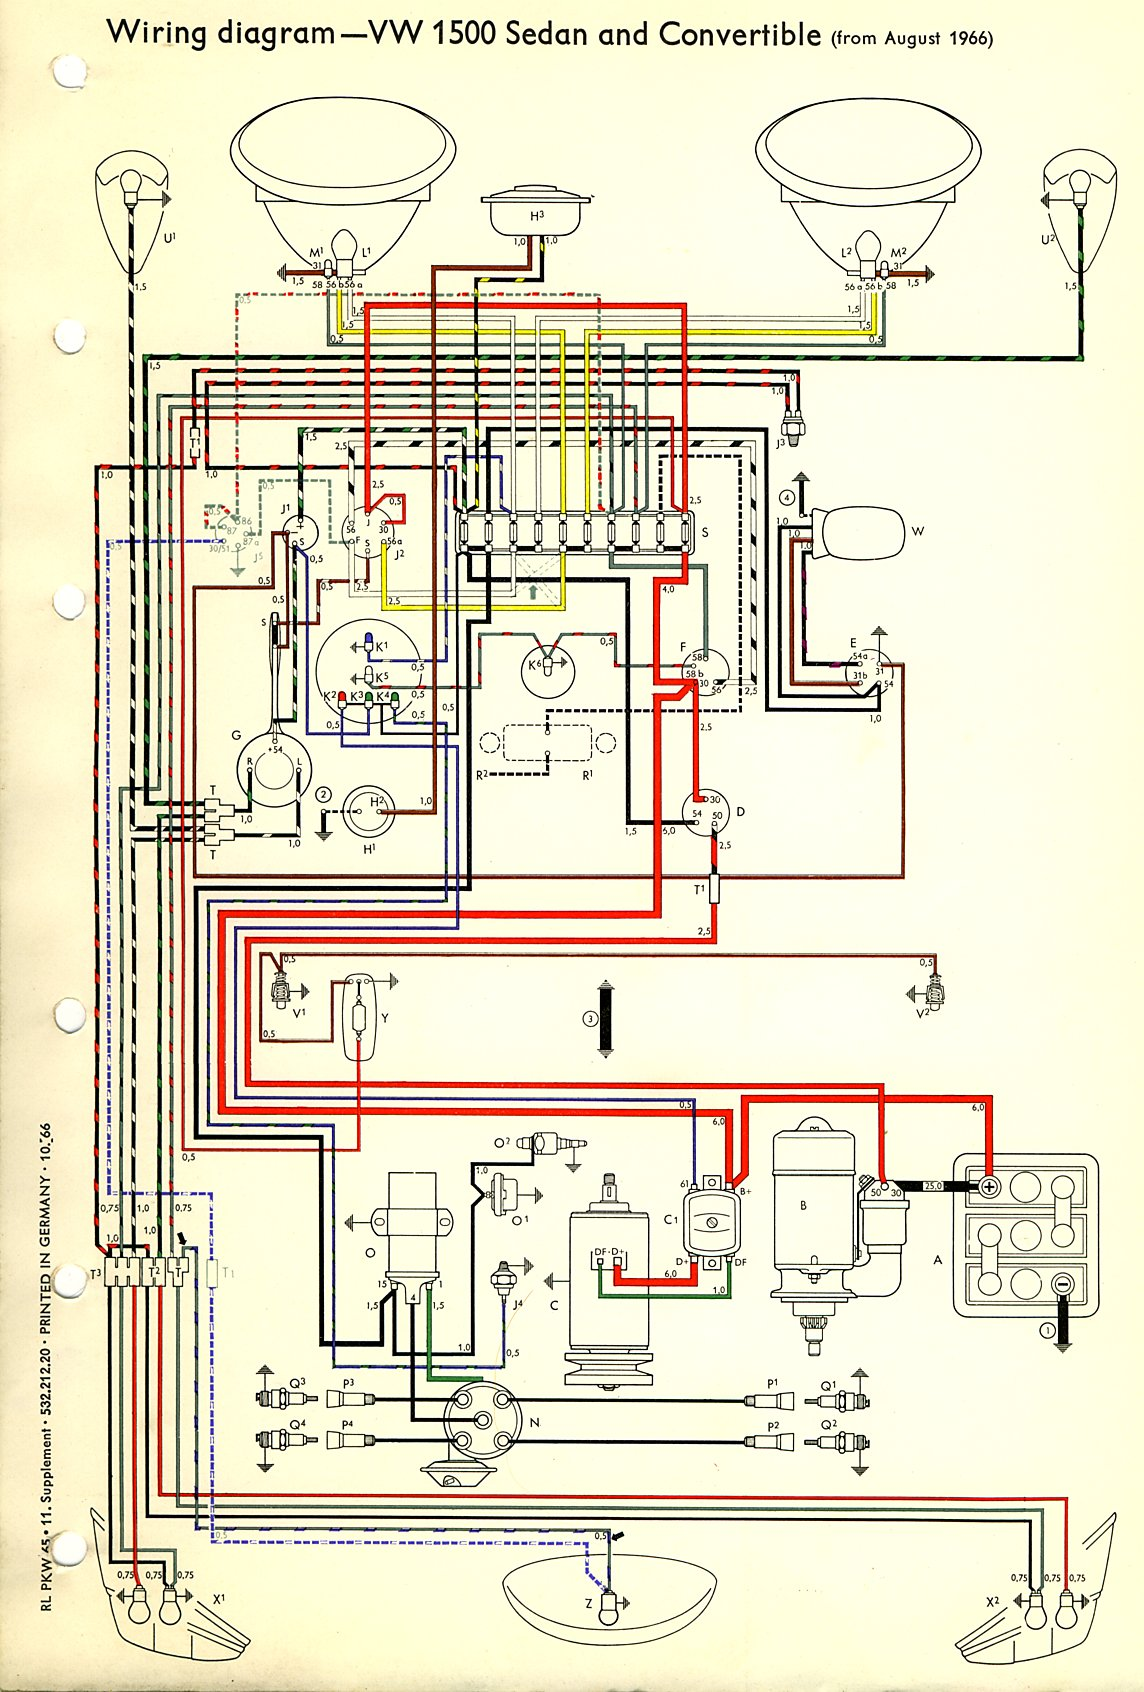 1967 beetle wiring diagram thegoldenbug com 1967 vw bug fuse diagram 1967 vw beetle wiring diagram #2